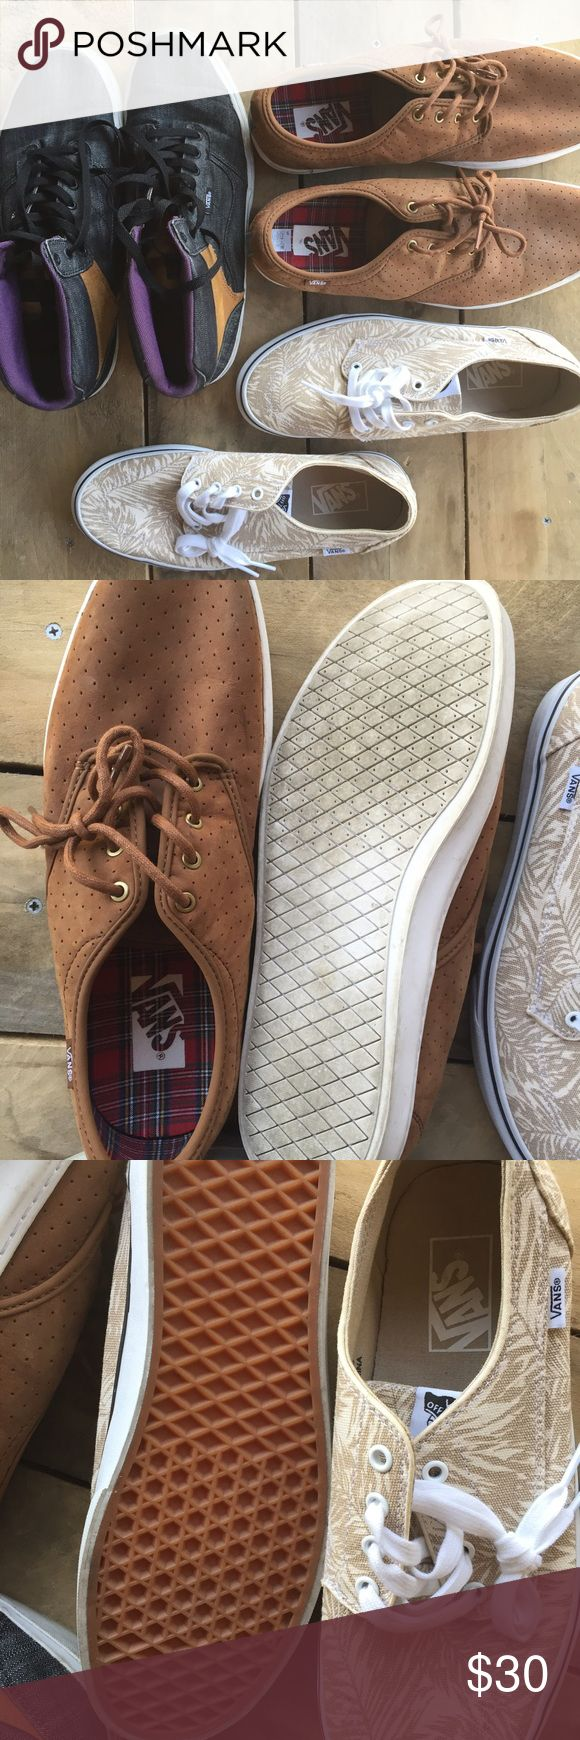 ✨SALE✨ Bundle of men's Vans Shoes!!!! Three size 10.5 Men's Vans shoe Bundle. such a deal. Palm tree print on the classic vans is Brand New NWOT. 10.5 men's. The other two are VERY gently worn 10.5 men's Vans shoes also!!! Rare styles. Brown leather one is very rare. Your man will look styling!!! Incredible deal...truly. Vans Shoes Sneakers